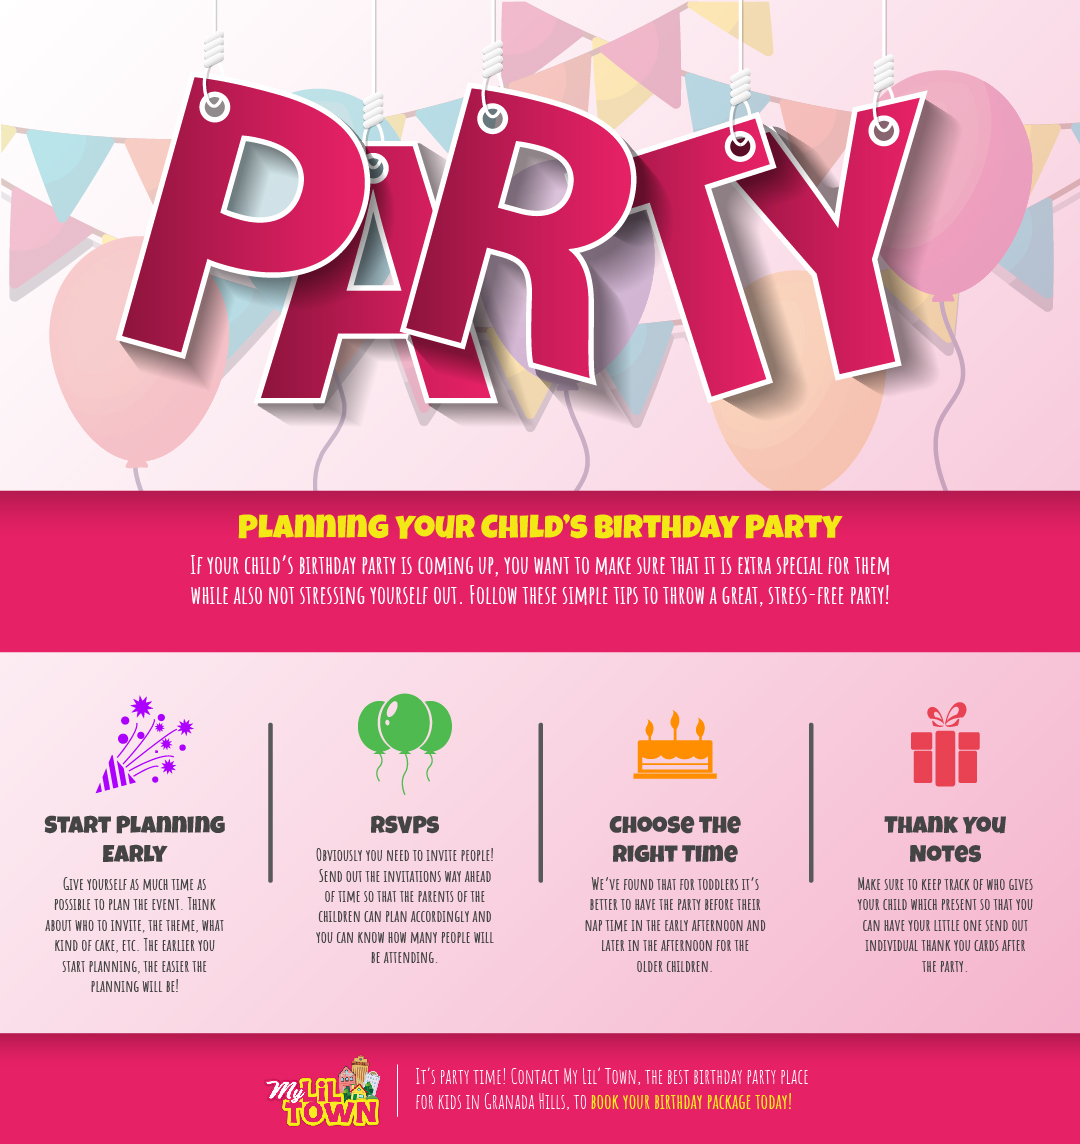 Birthday Party Places for Kids in Granada Hills - Helpful